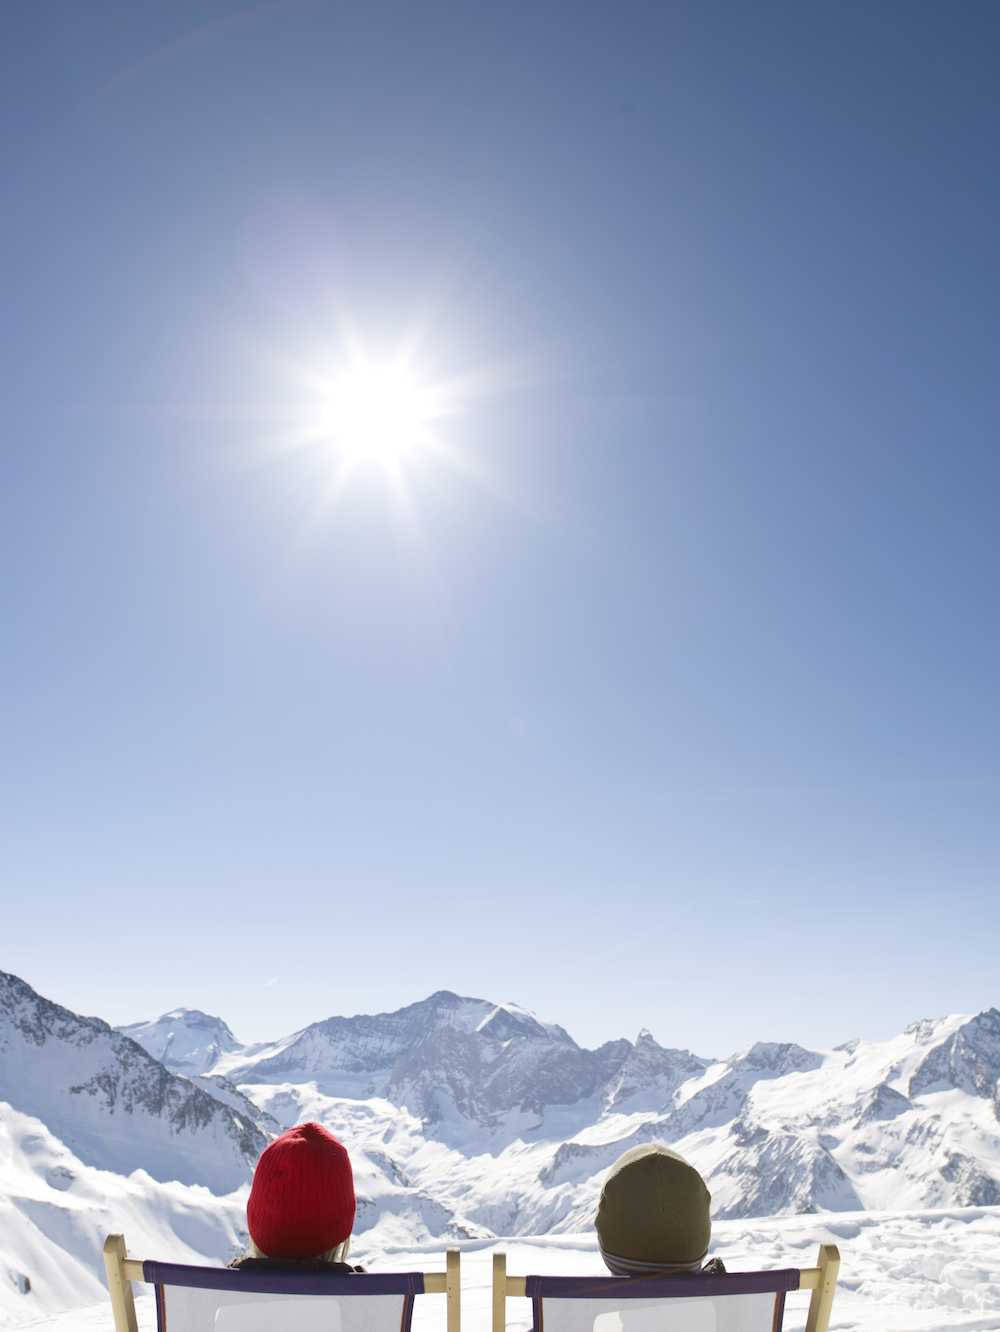 soaking up sun in moutains in winter